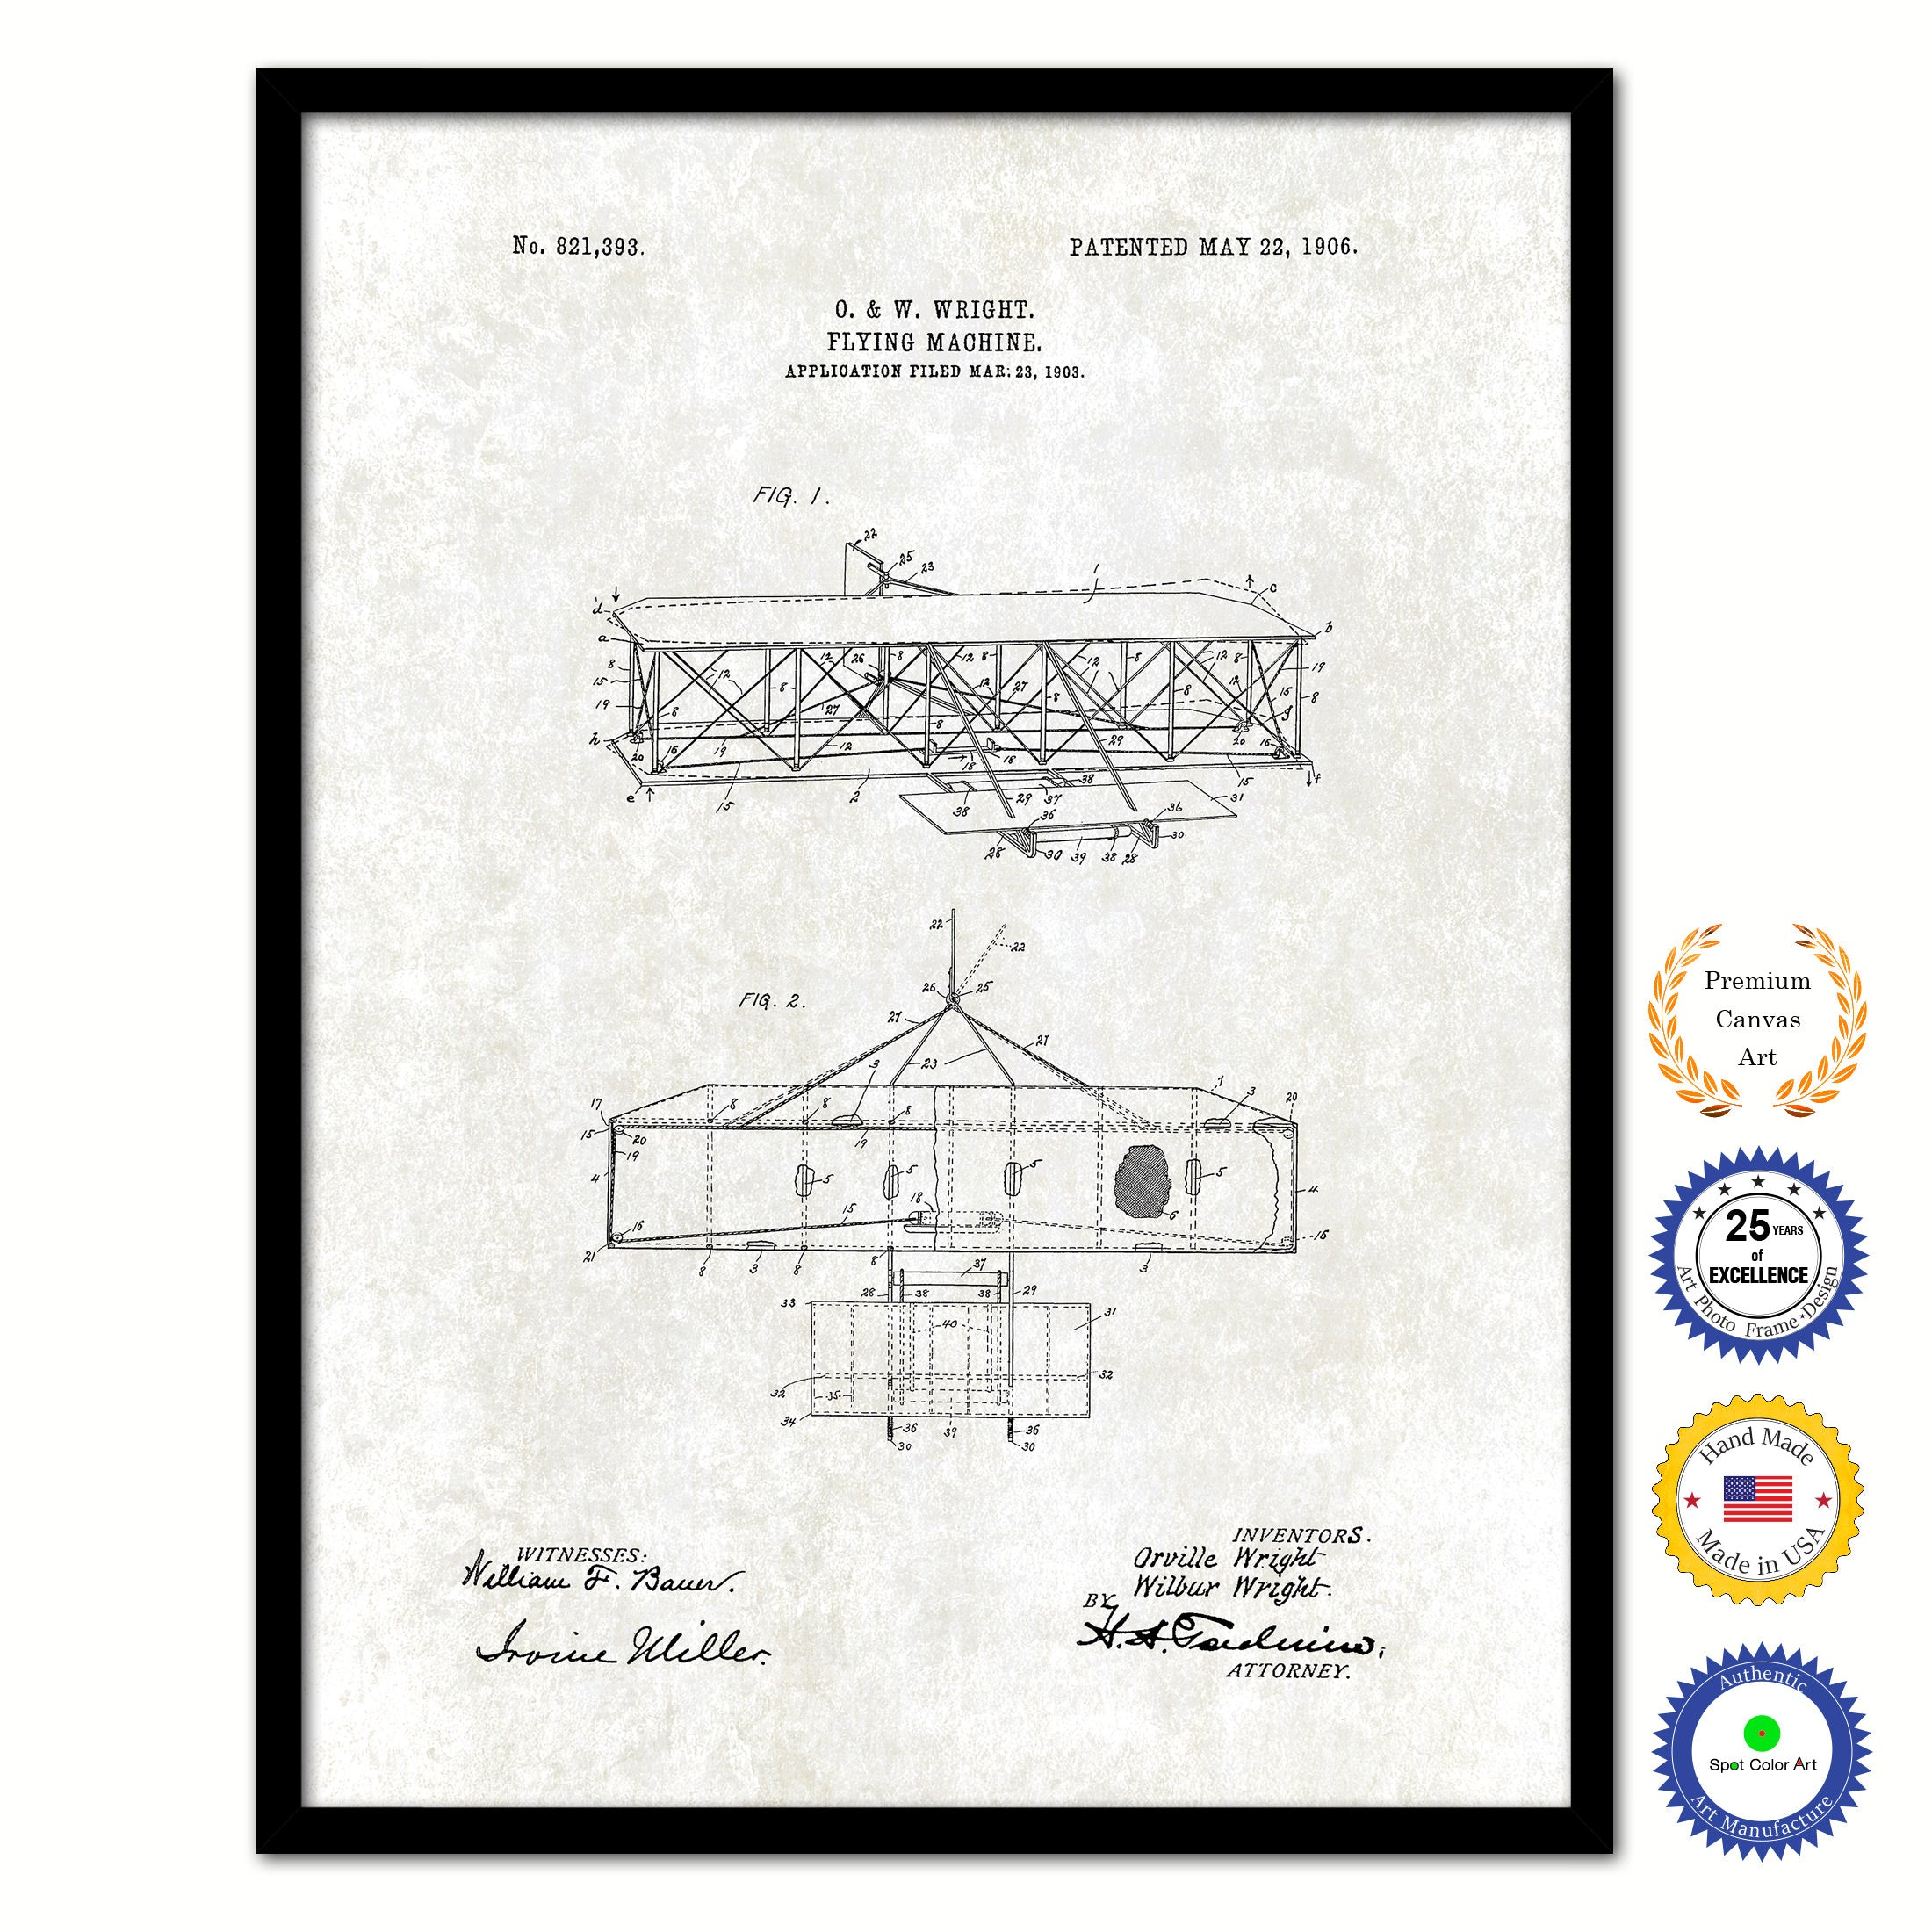 1906 Flying Machine Vintage Patent Artwork Black Framed Canvas Print Home Office Decor Great for Pilot Gift